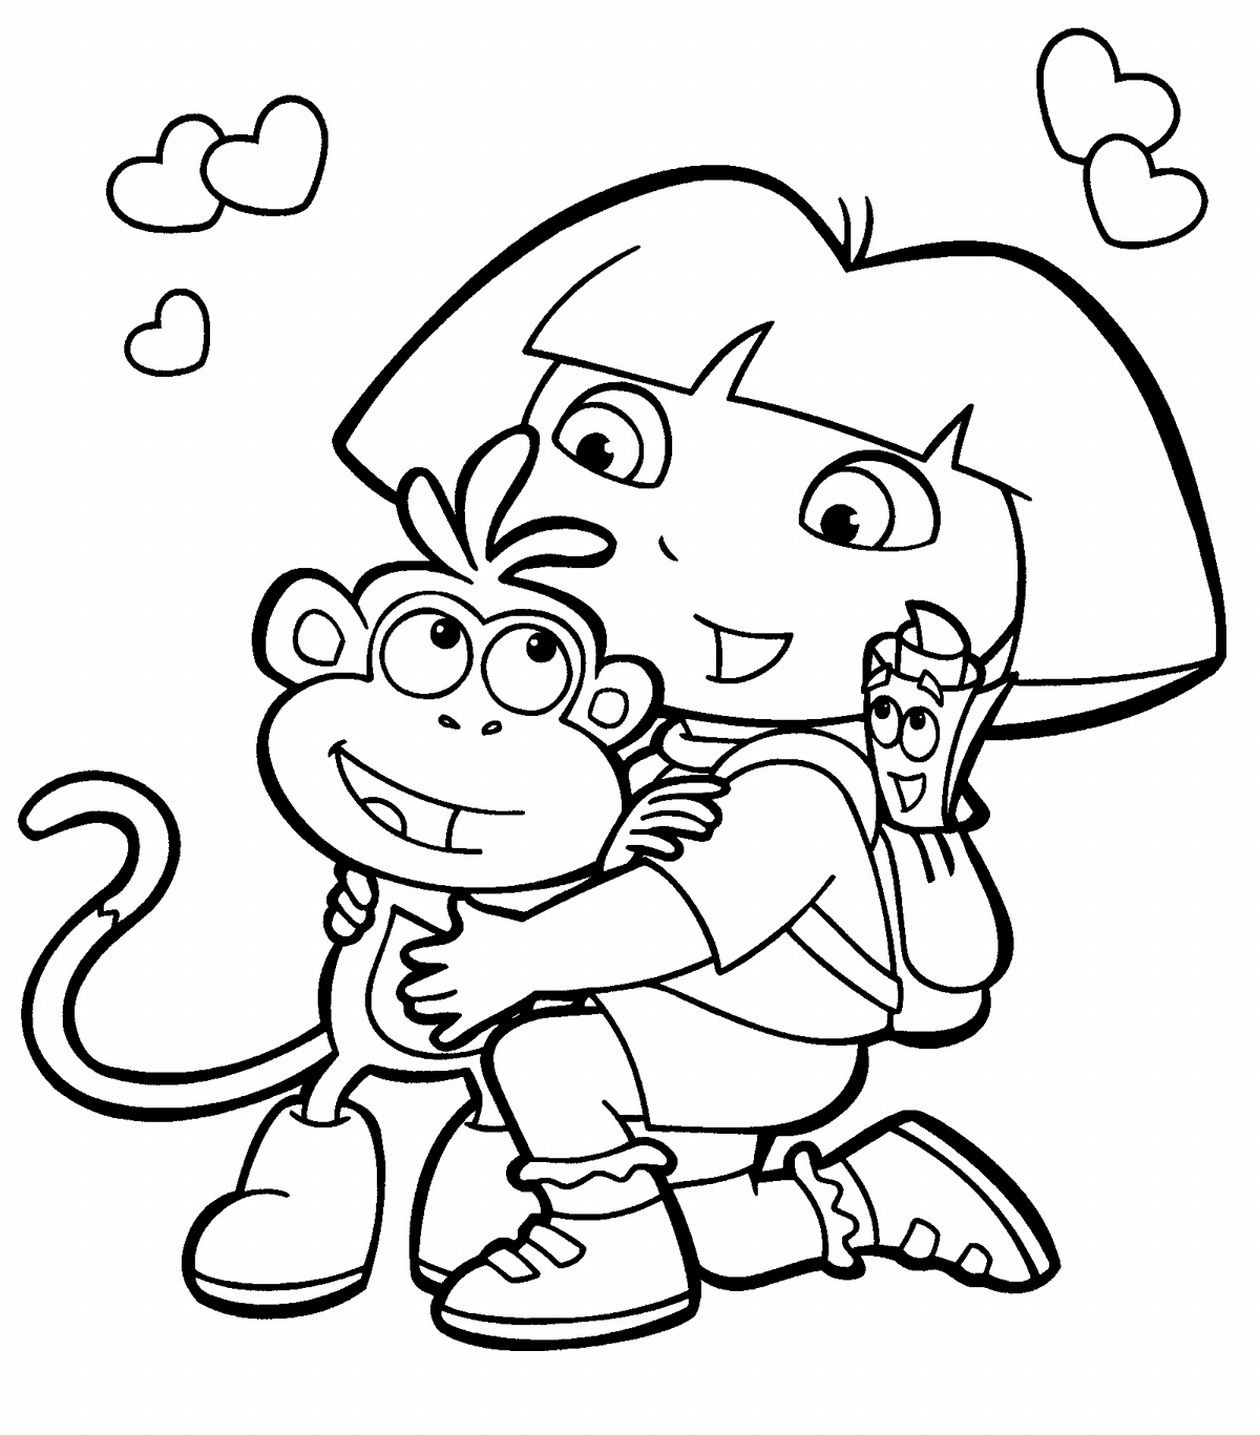 1260x1435 Printable Kids Coloring Pages In Pretty Draw Page Kids Coloring